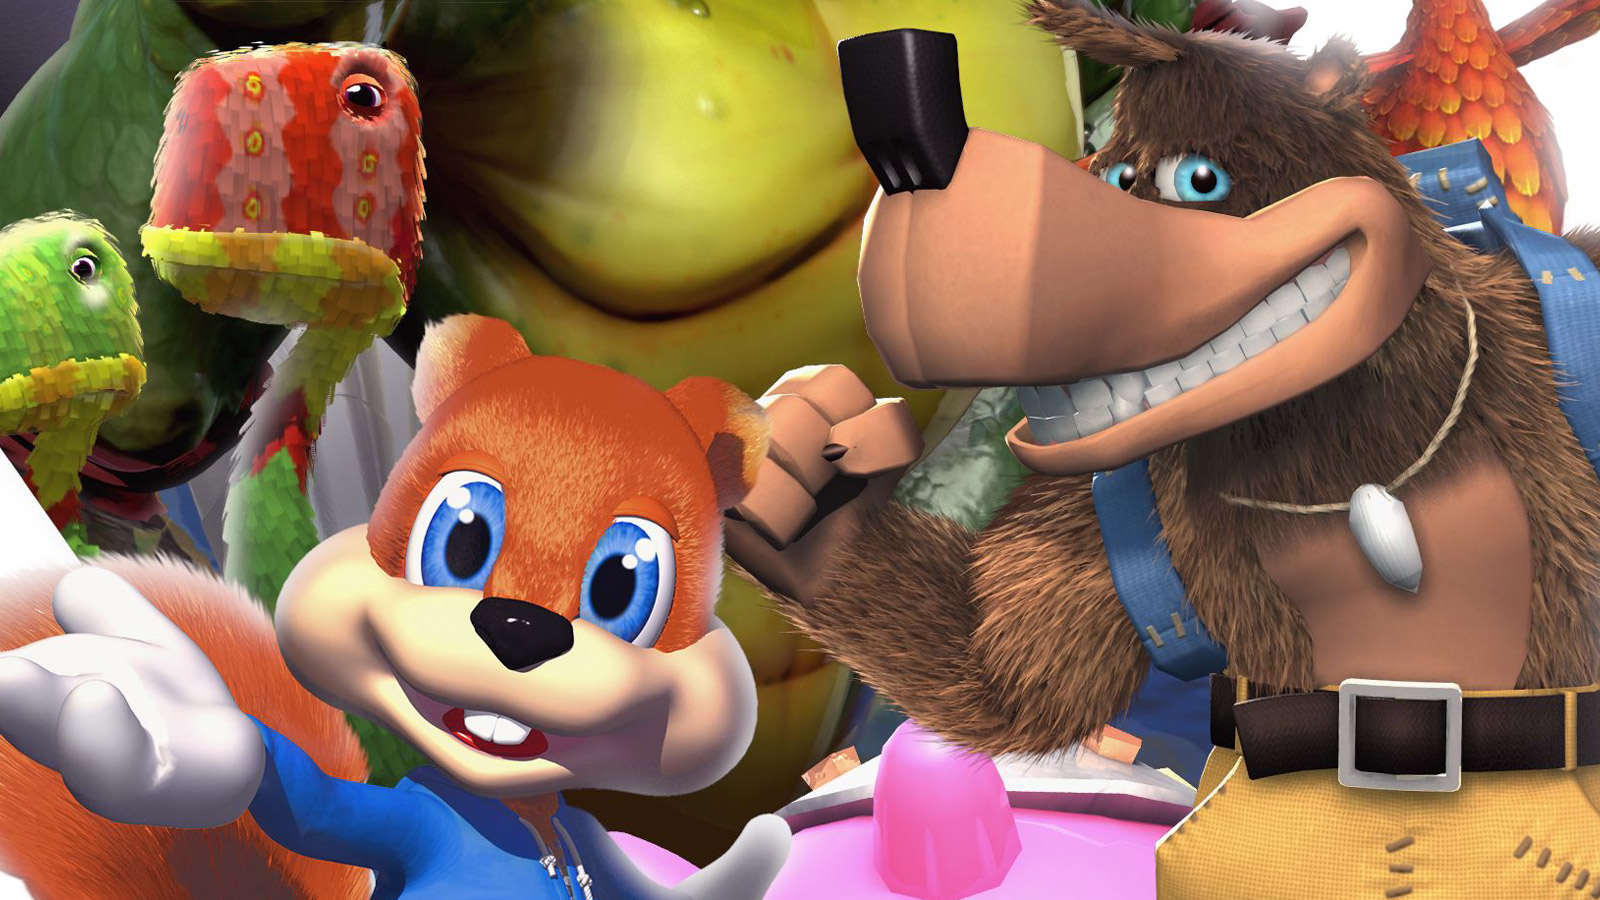 Xbox Game Pass adds Rare Replay, Goat Simulator to close out June